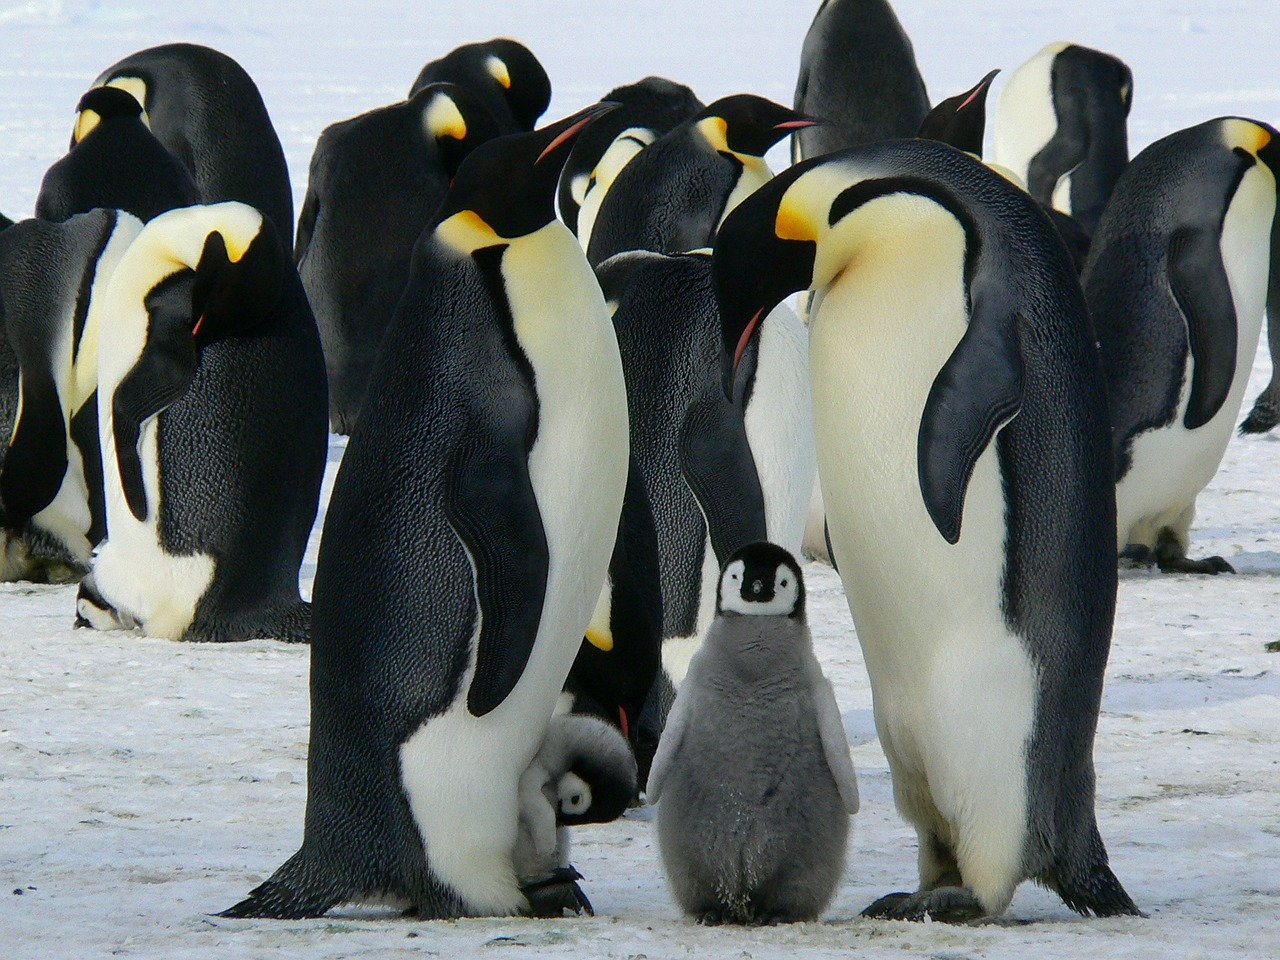 Do Penguins Have Feathers or Fur